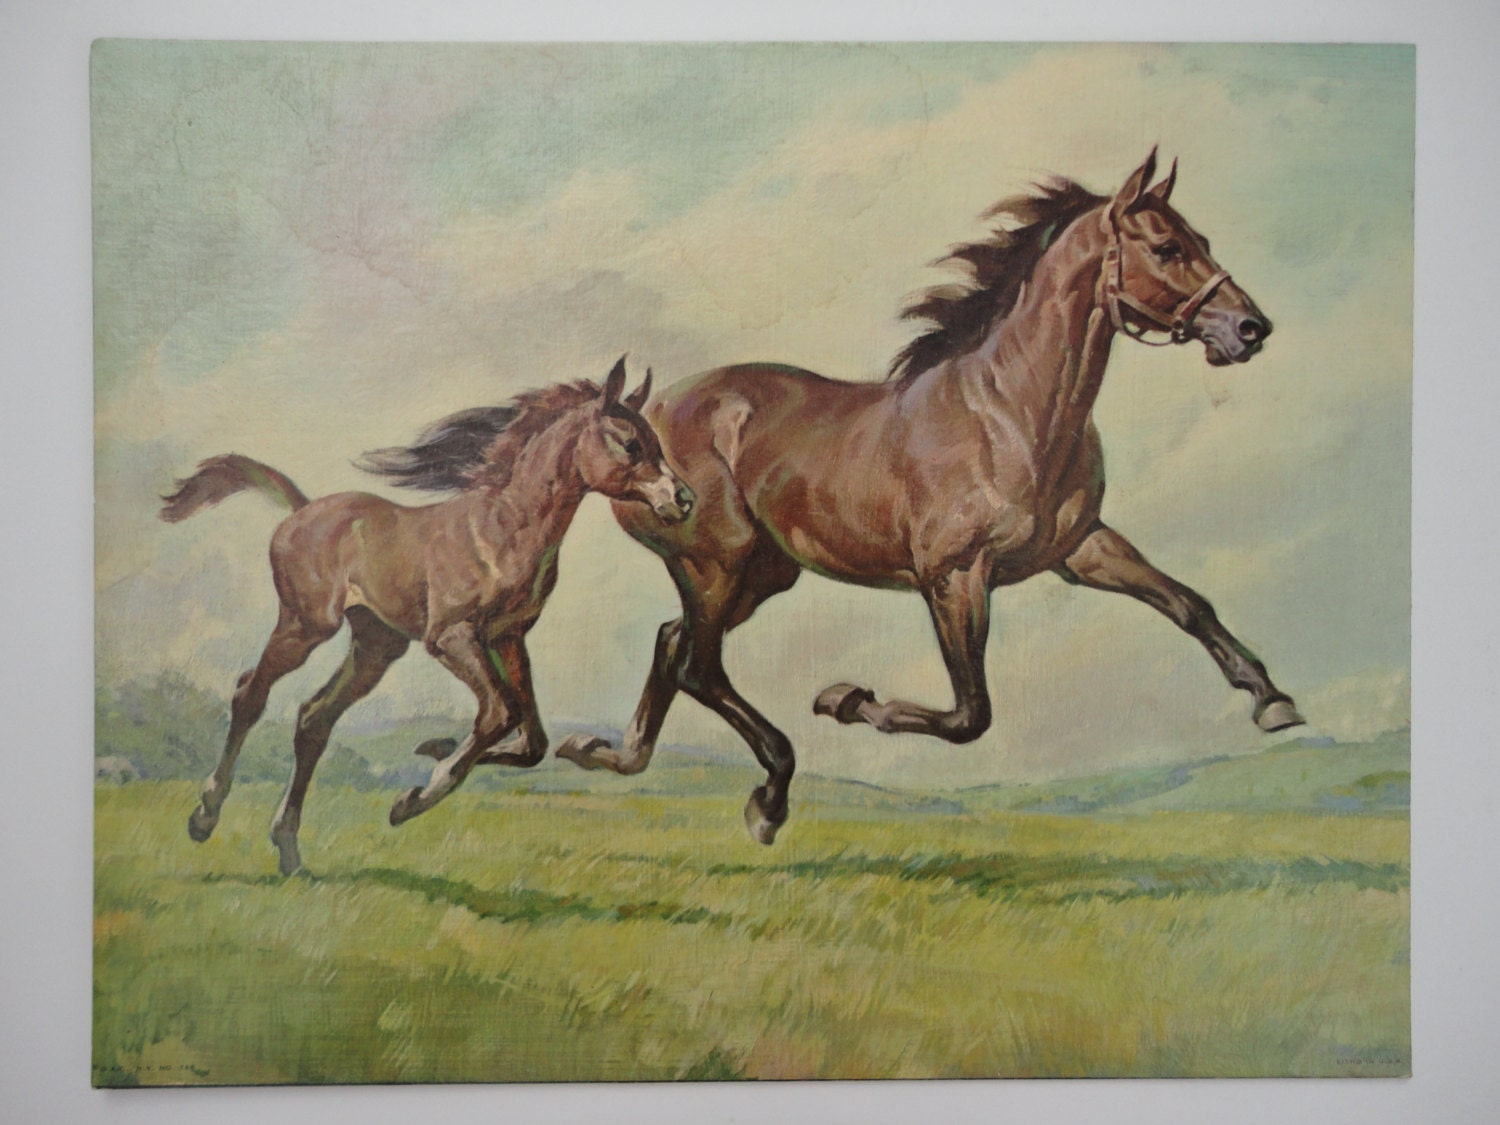 Vintage Horse Print Horse By Brown Winde Fine Prints 11 By